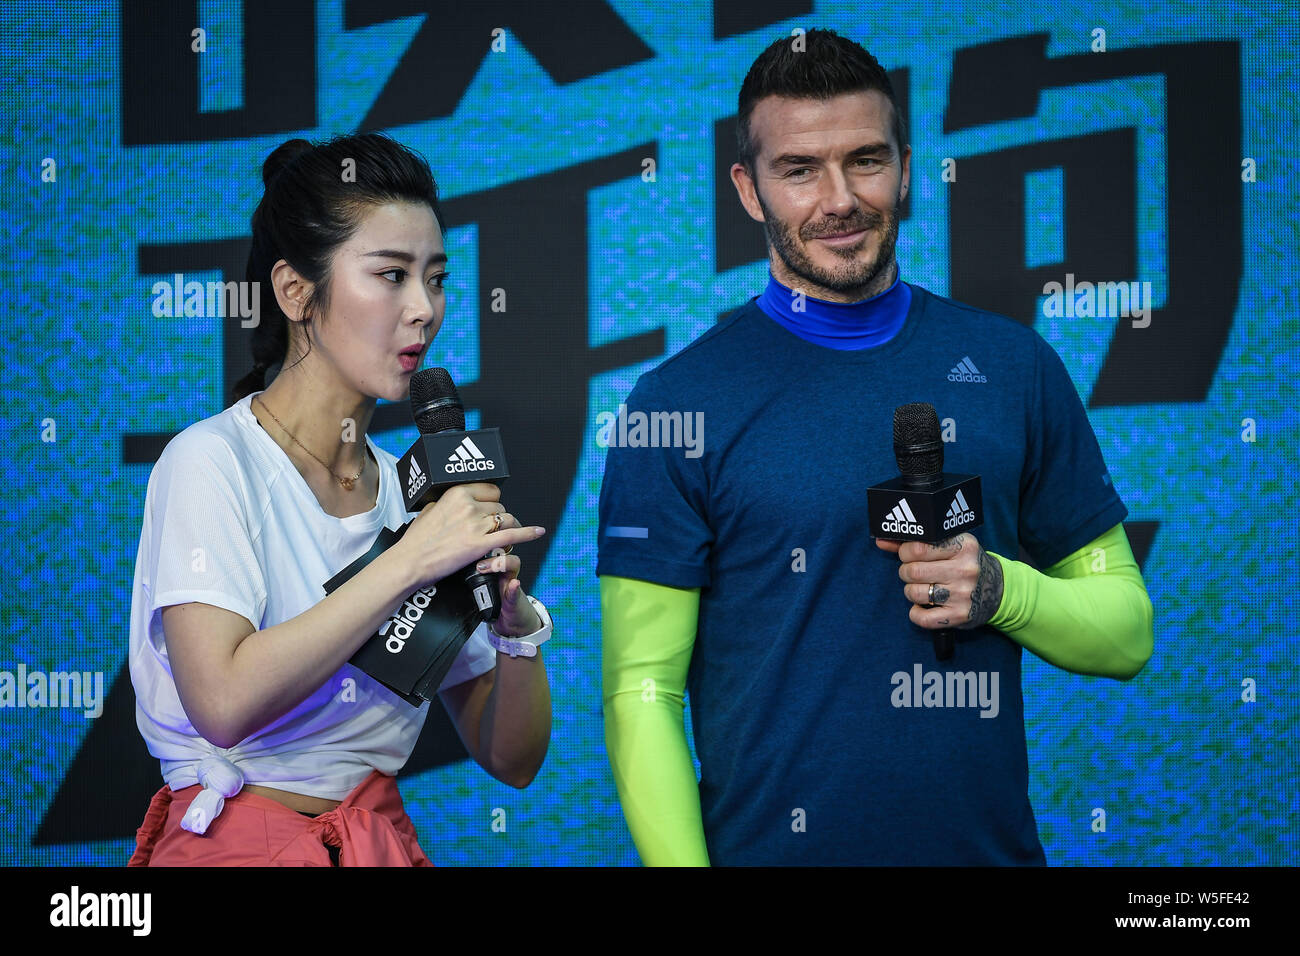 candidato Adoración Usando una computadora  English football star David Beckham, right, attends the launch event for  new products of adidas Originals x David Beckham in Guangzhou city, south  Chi Stock Photo - Alamy